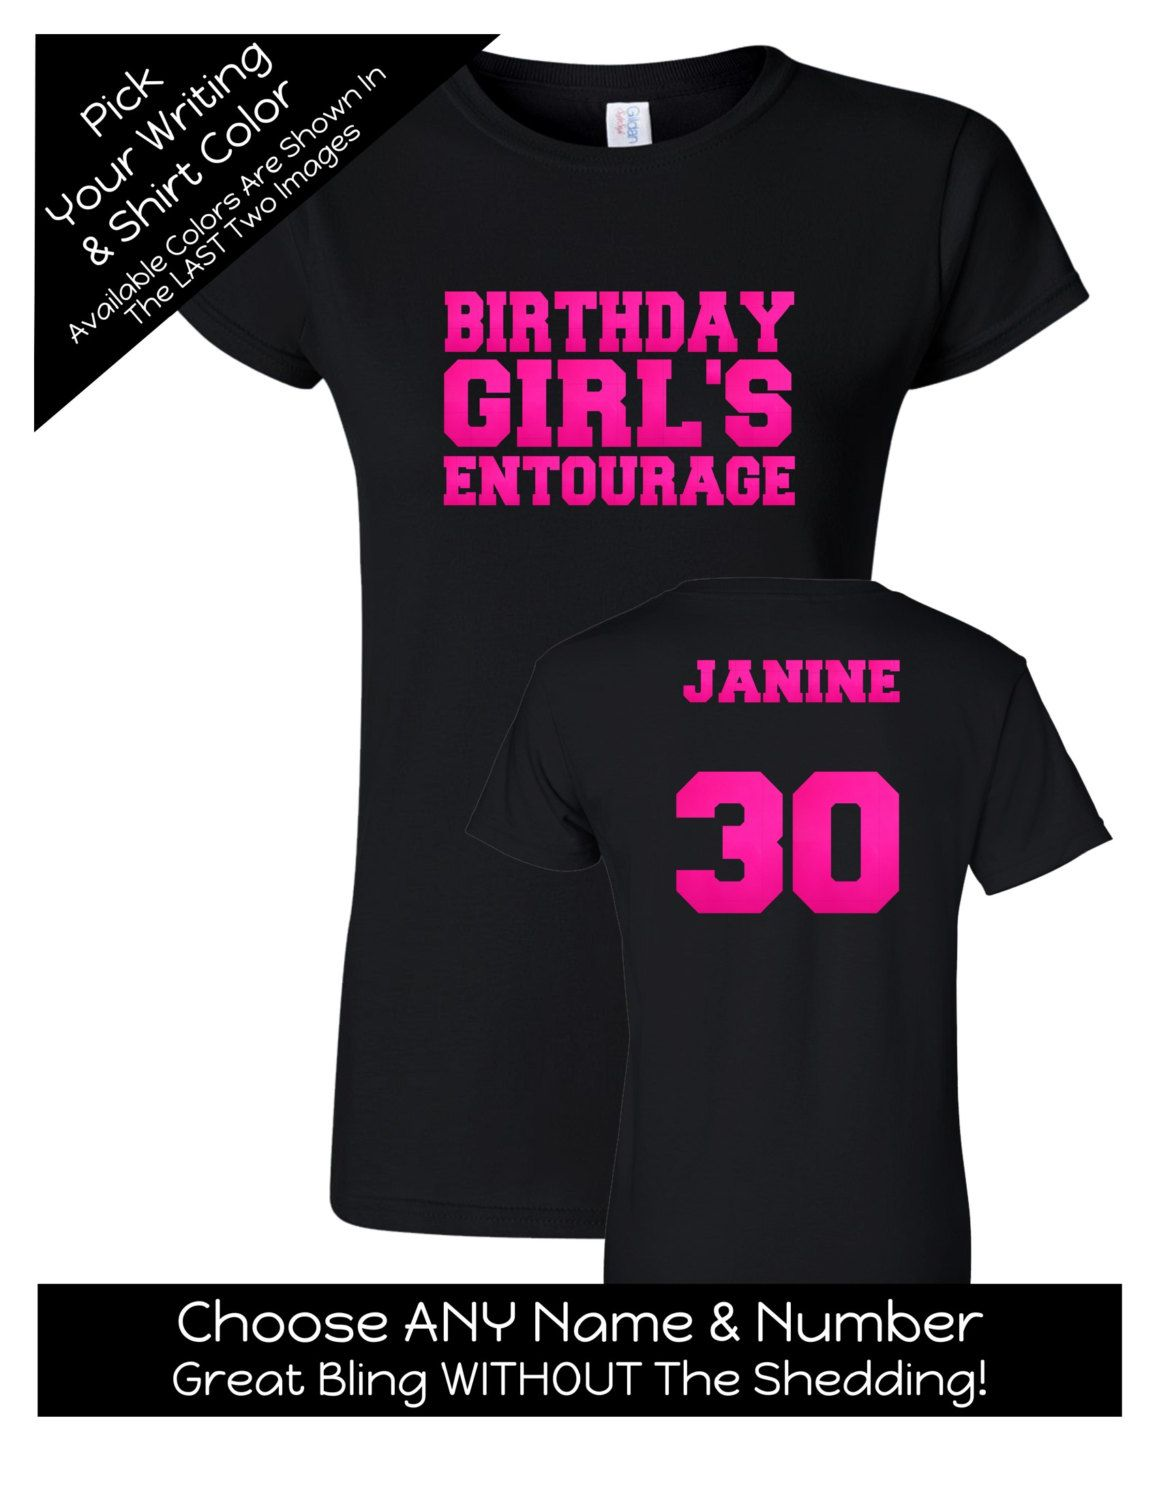 e766689ea Birthday Girl's Entourage Shirt - Personalize the Name Number on the Back - Birthday  Party Matching Shirts - Entourage Shirts by MagicalMemoriesbyJ on Etsy